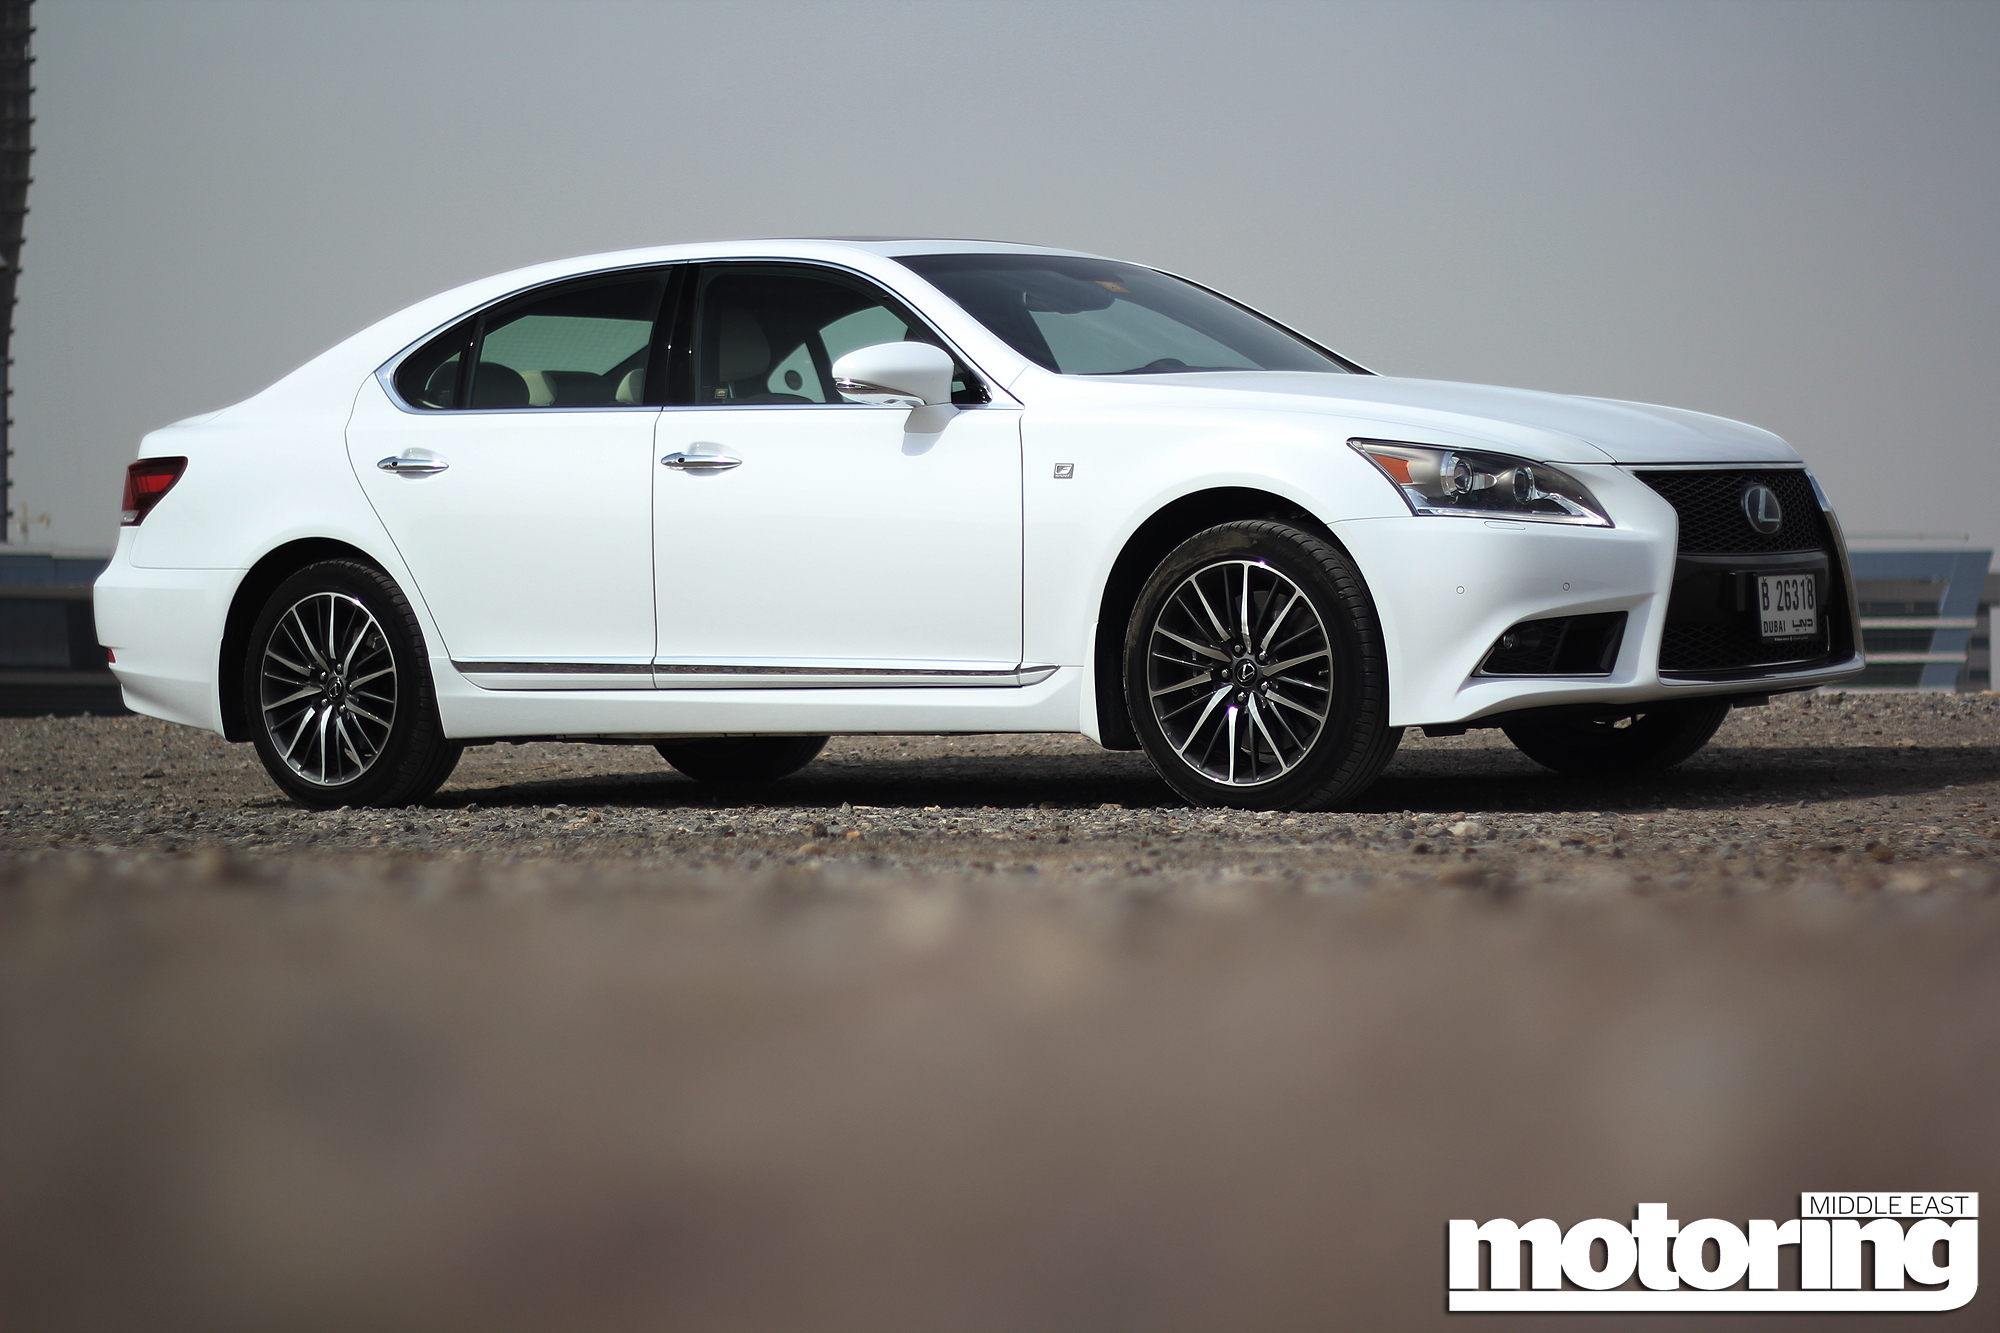 2013 Lexus Ls460 F Sport Motoring Middle East Car News